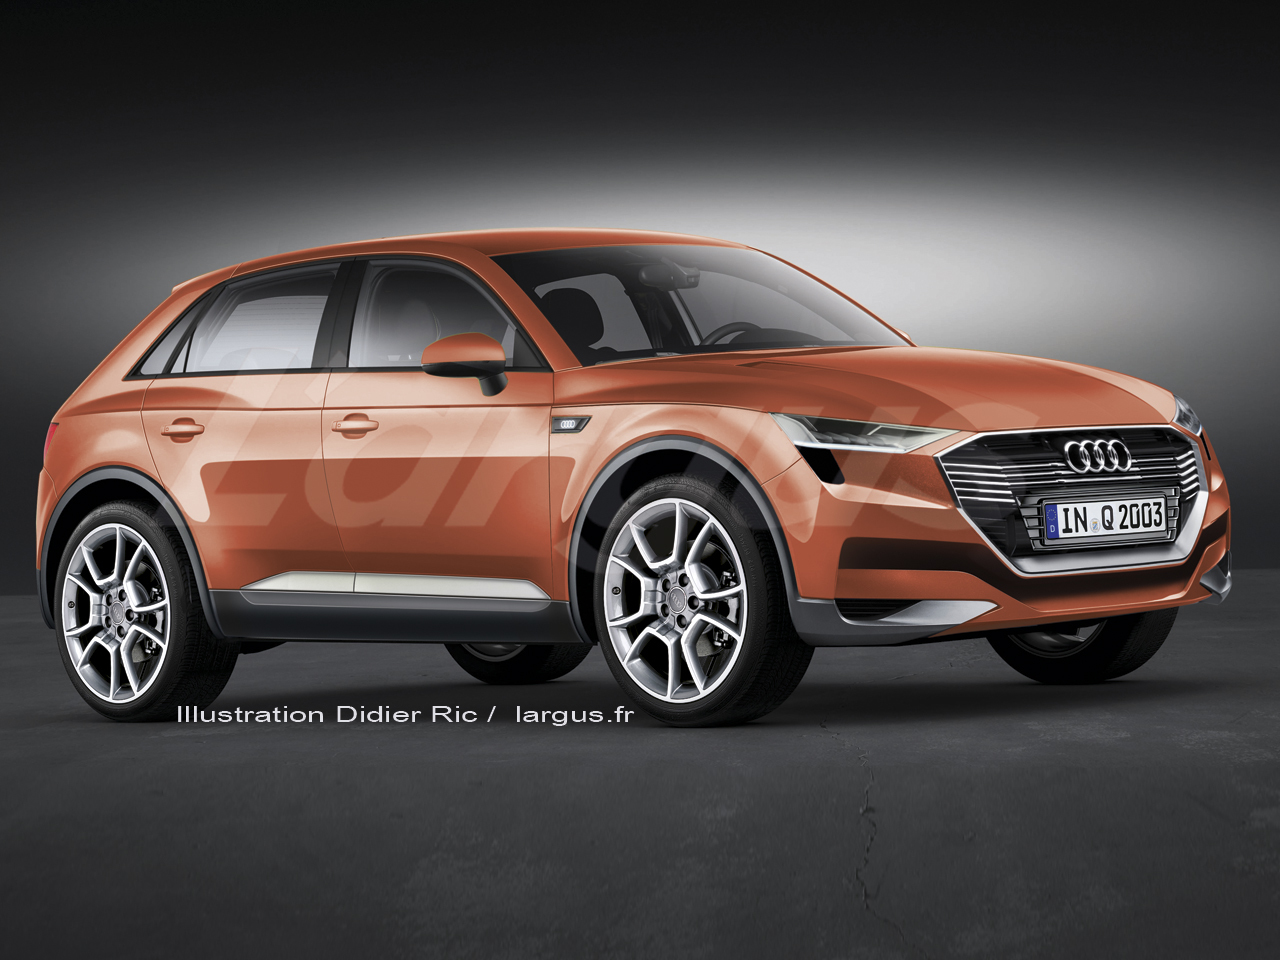 Scoop le futur audi q2 sera d voil au salon de gen ve for Salon de la photo 2016